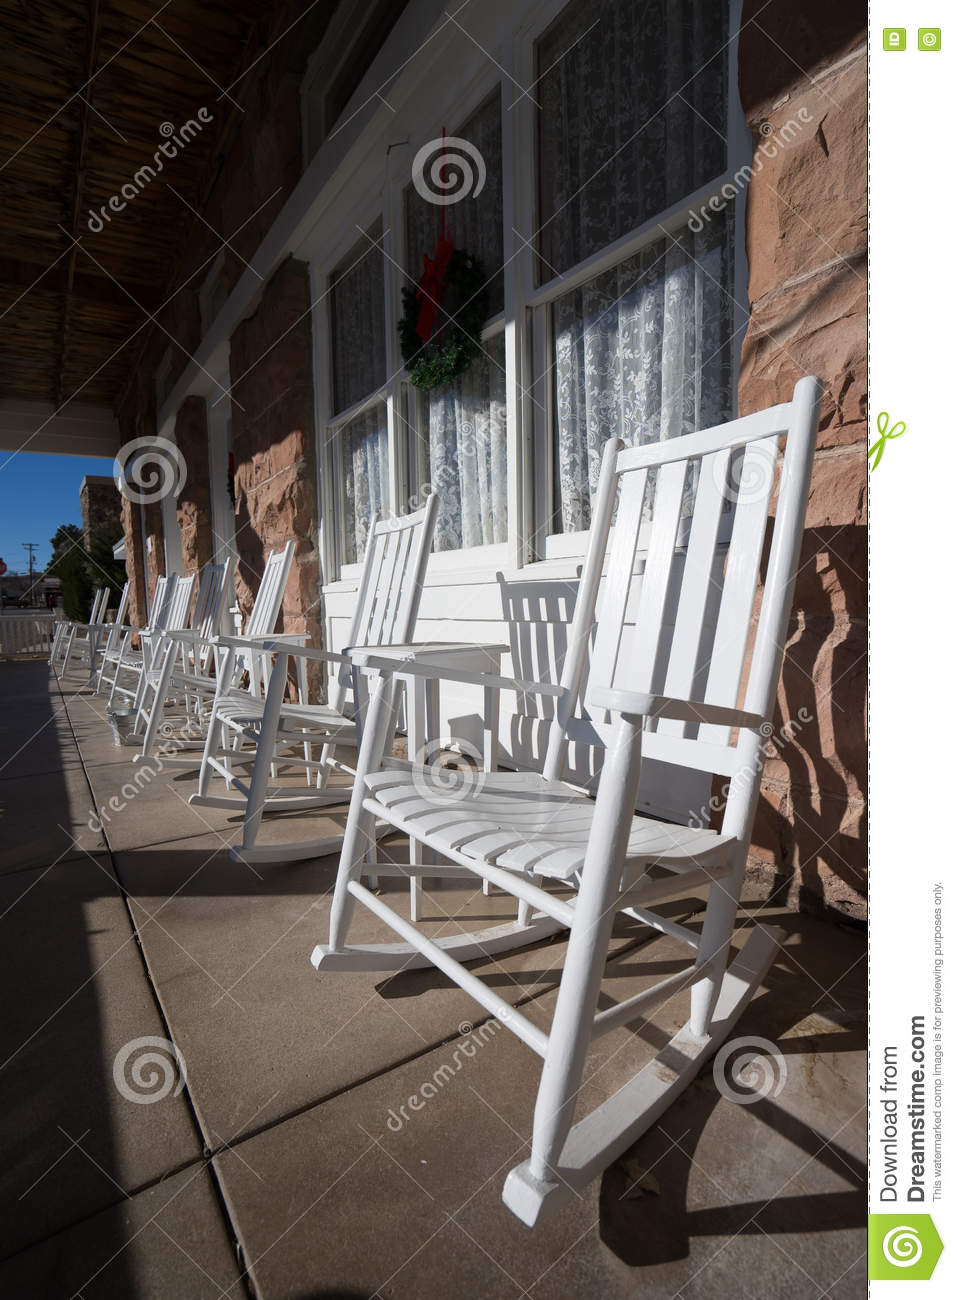 Astounding White Rocking Chairs On Patio Stock Photo Image Of Rocking Gmtry Best Dining Table And Chair Ideas Images Gmtryco